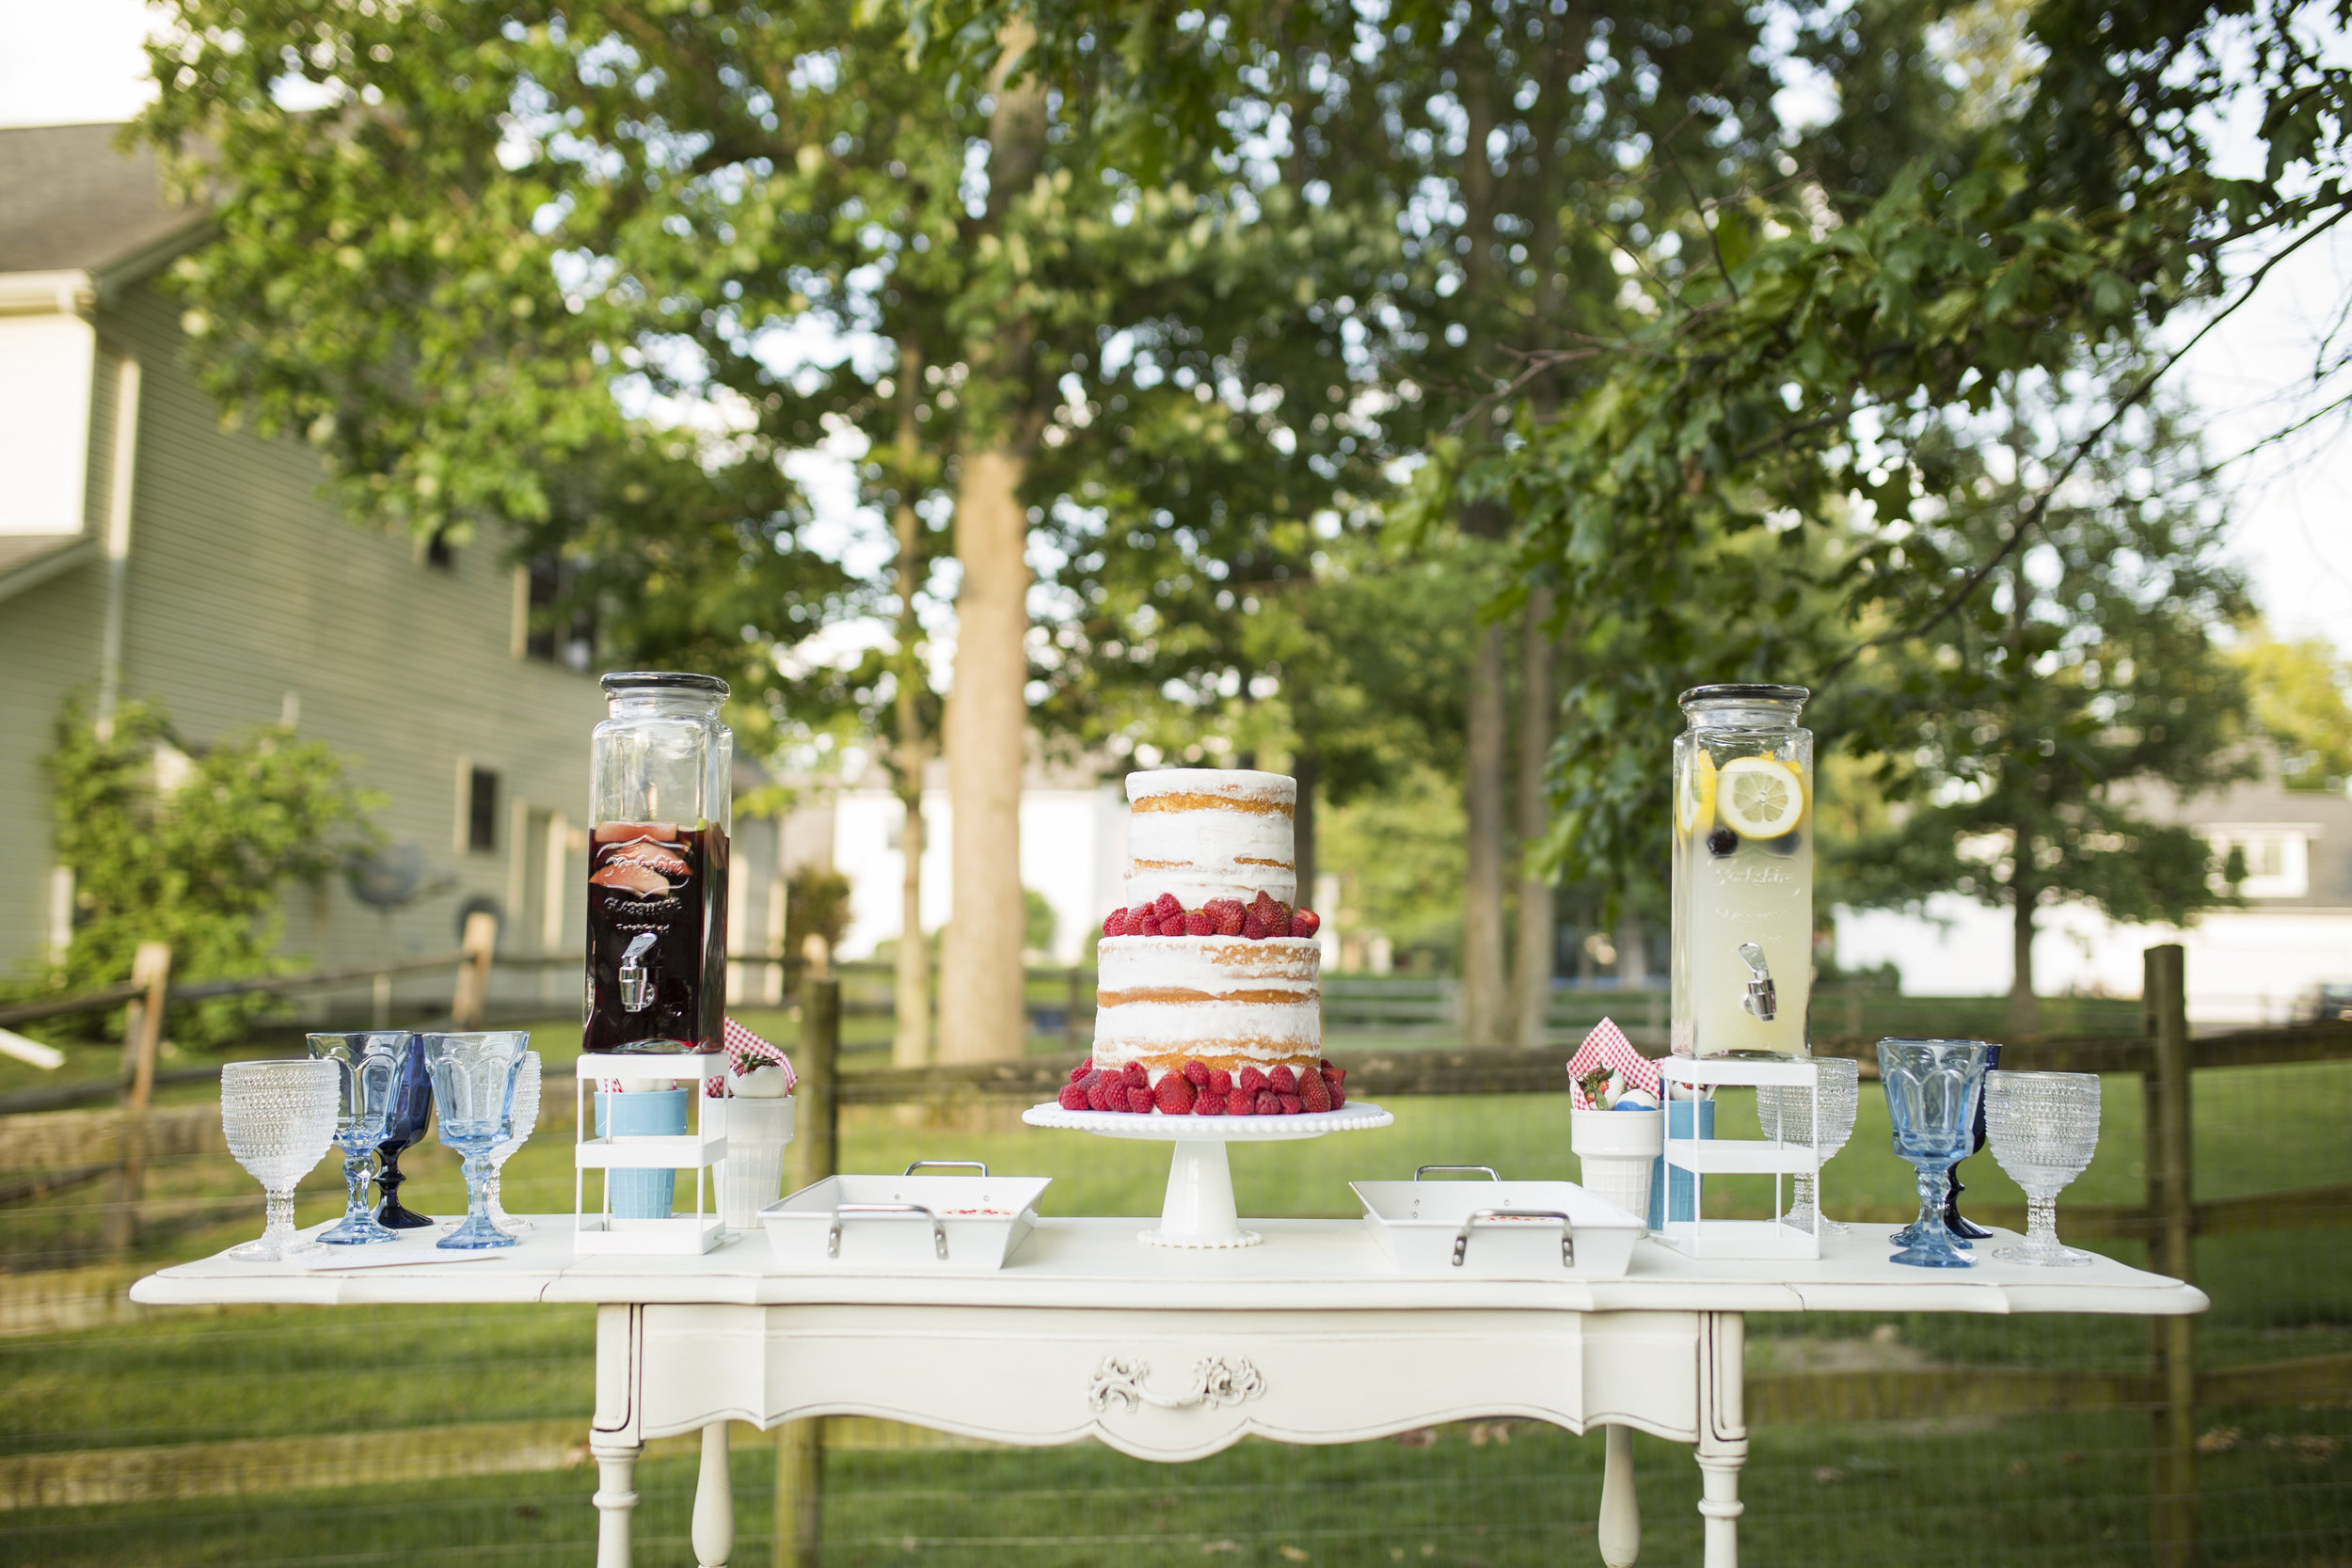 Host a Stylish Fourth of July Party with Entertaining Ideas from Cassandra Clair of Event Prep